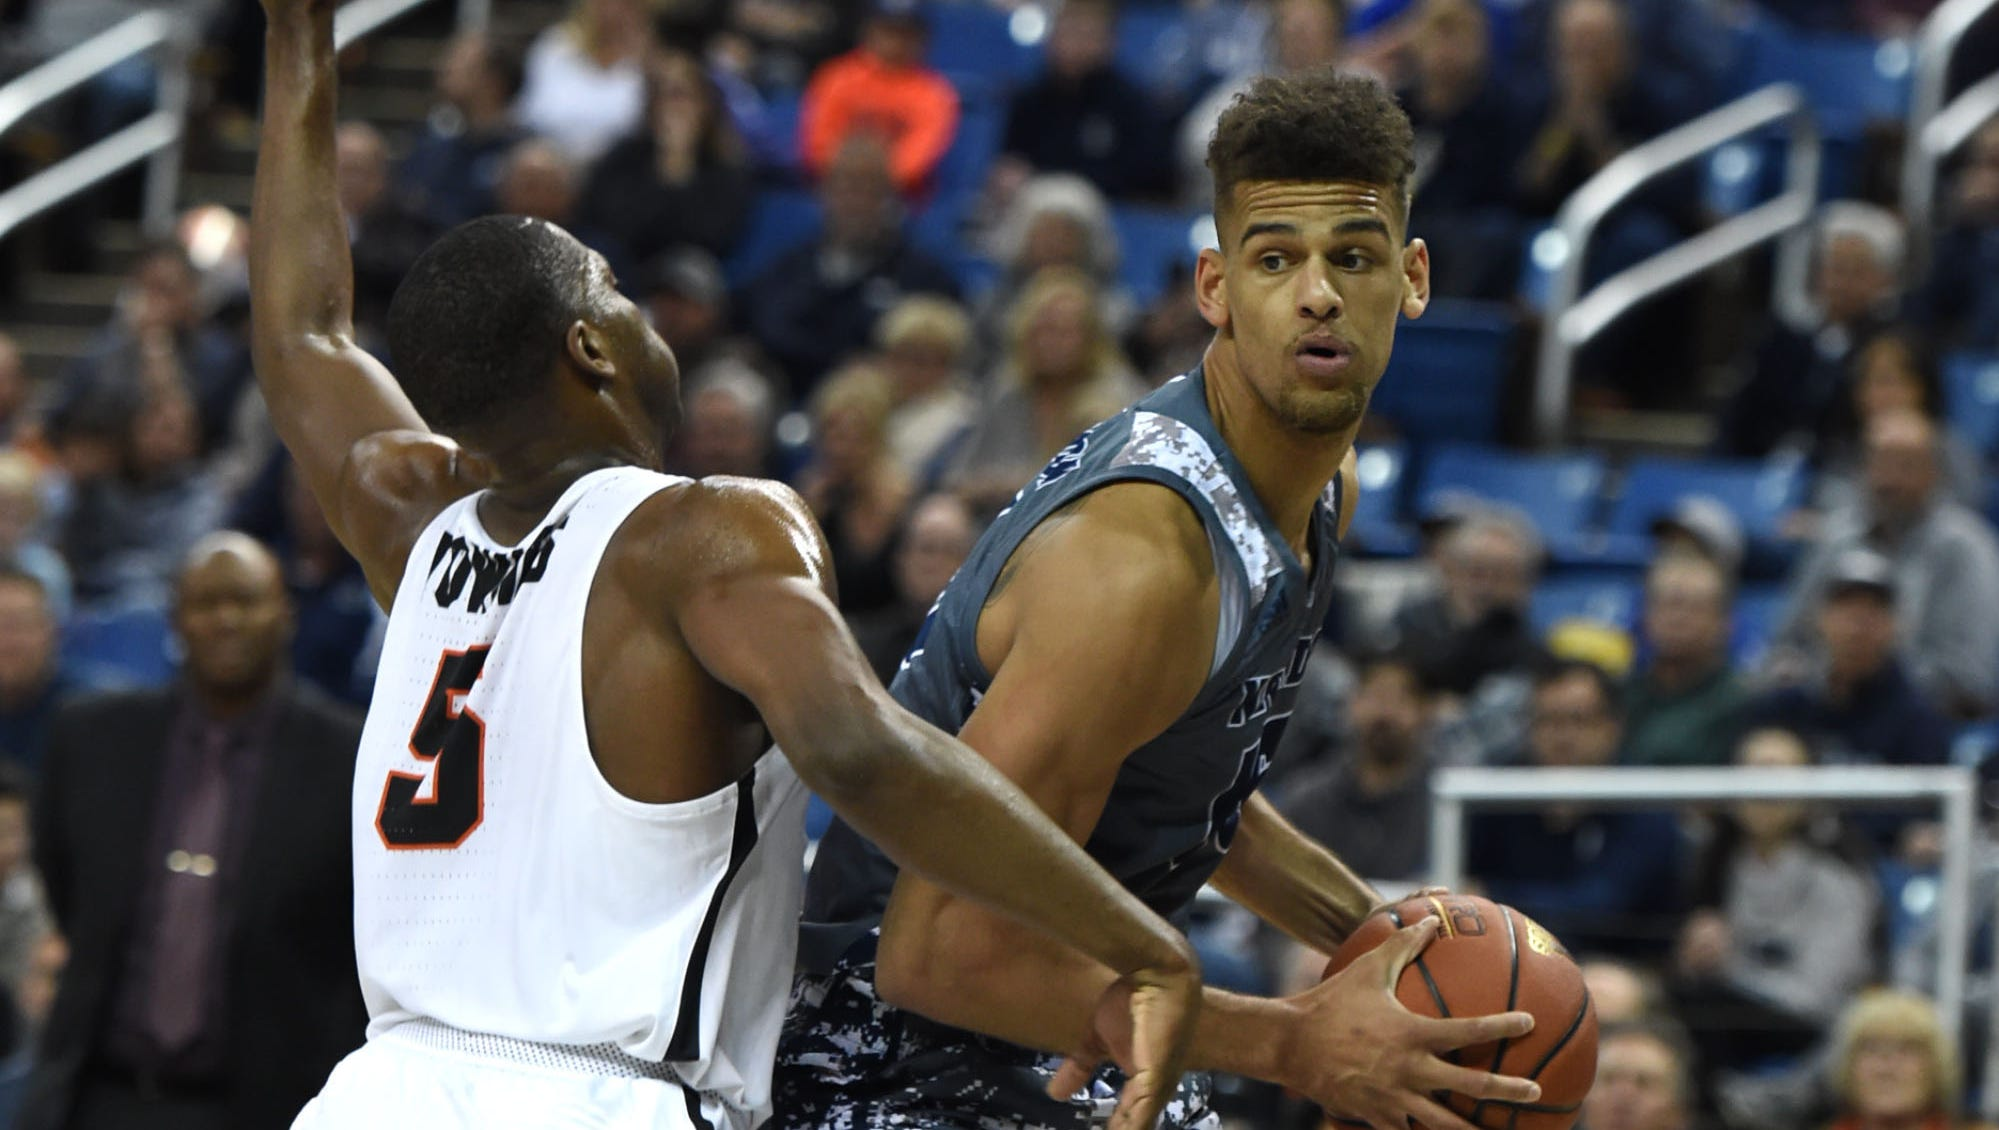 Nevada's Trey Porter looks t oget around Pacific's Anthoney Townes during Friday's game.